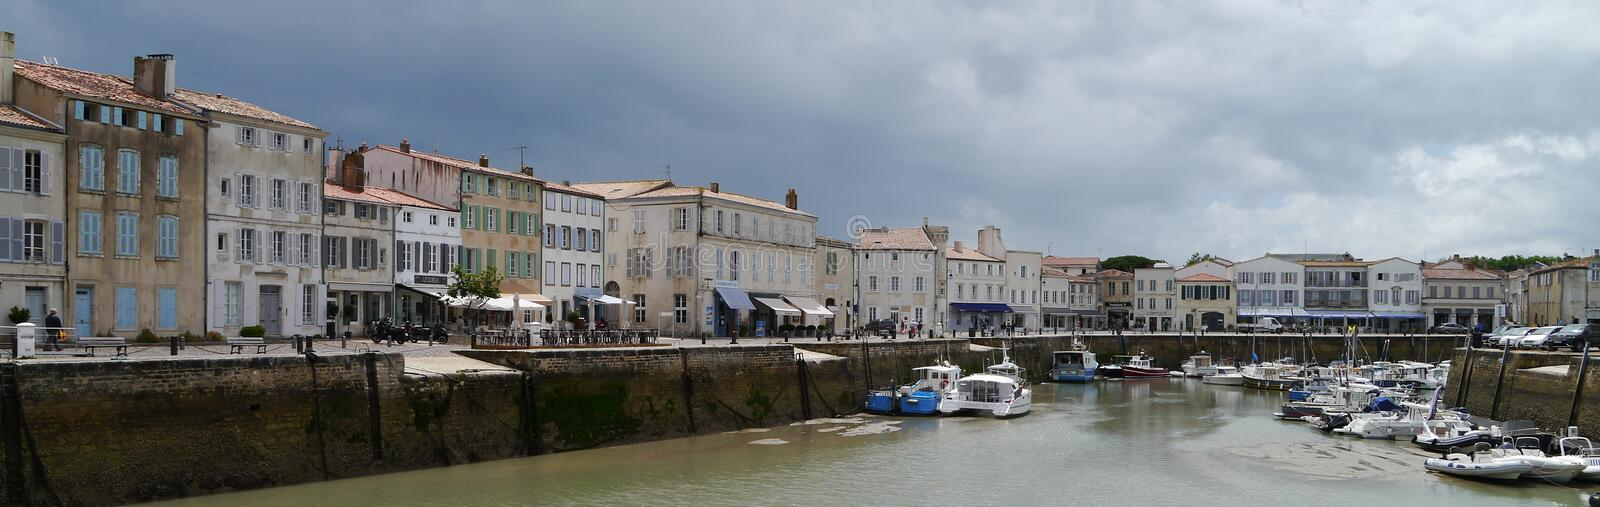 Dark clouds in harbour in St Martin de Re, Il de Re. Panoramic. Storm clouds over Saint Martin de Re, Il de Re, South West France. Harbour side. boats in water stock photography